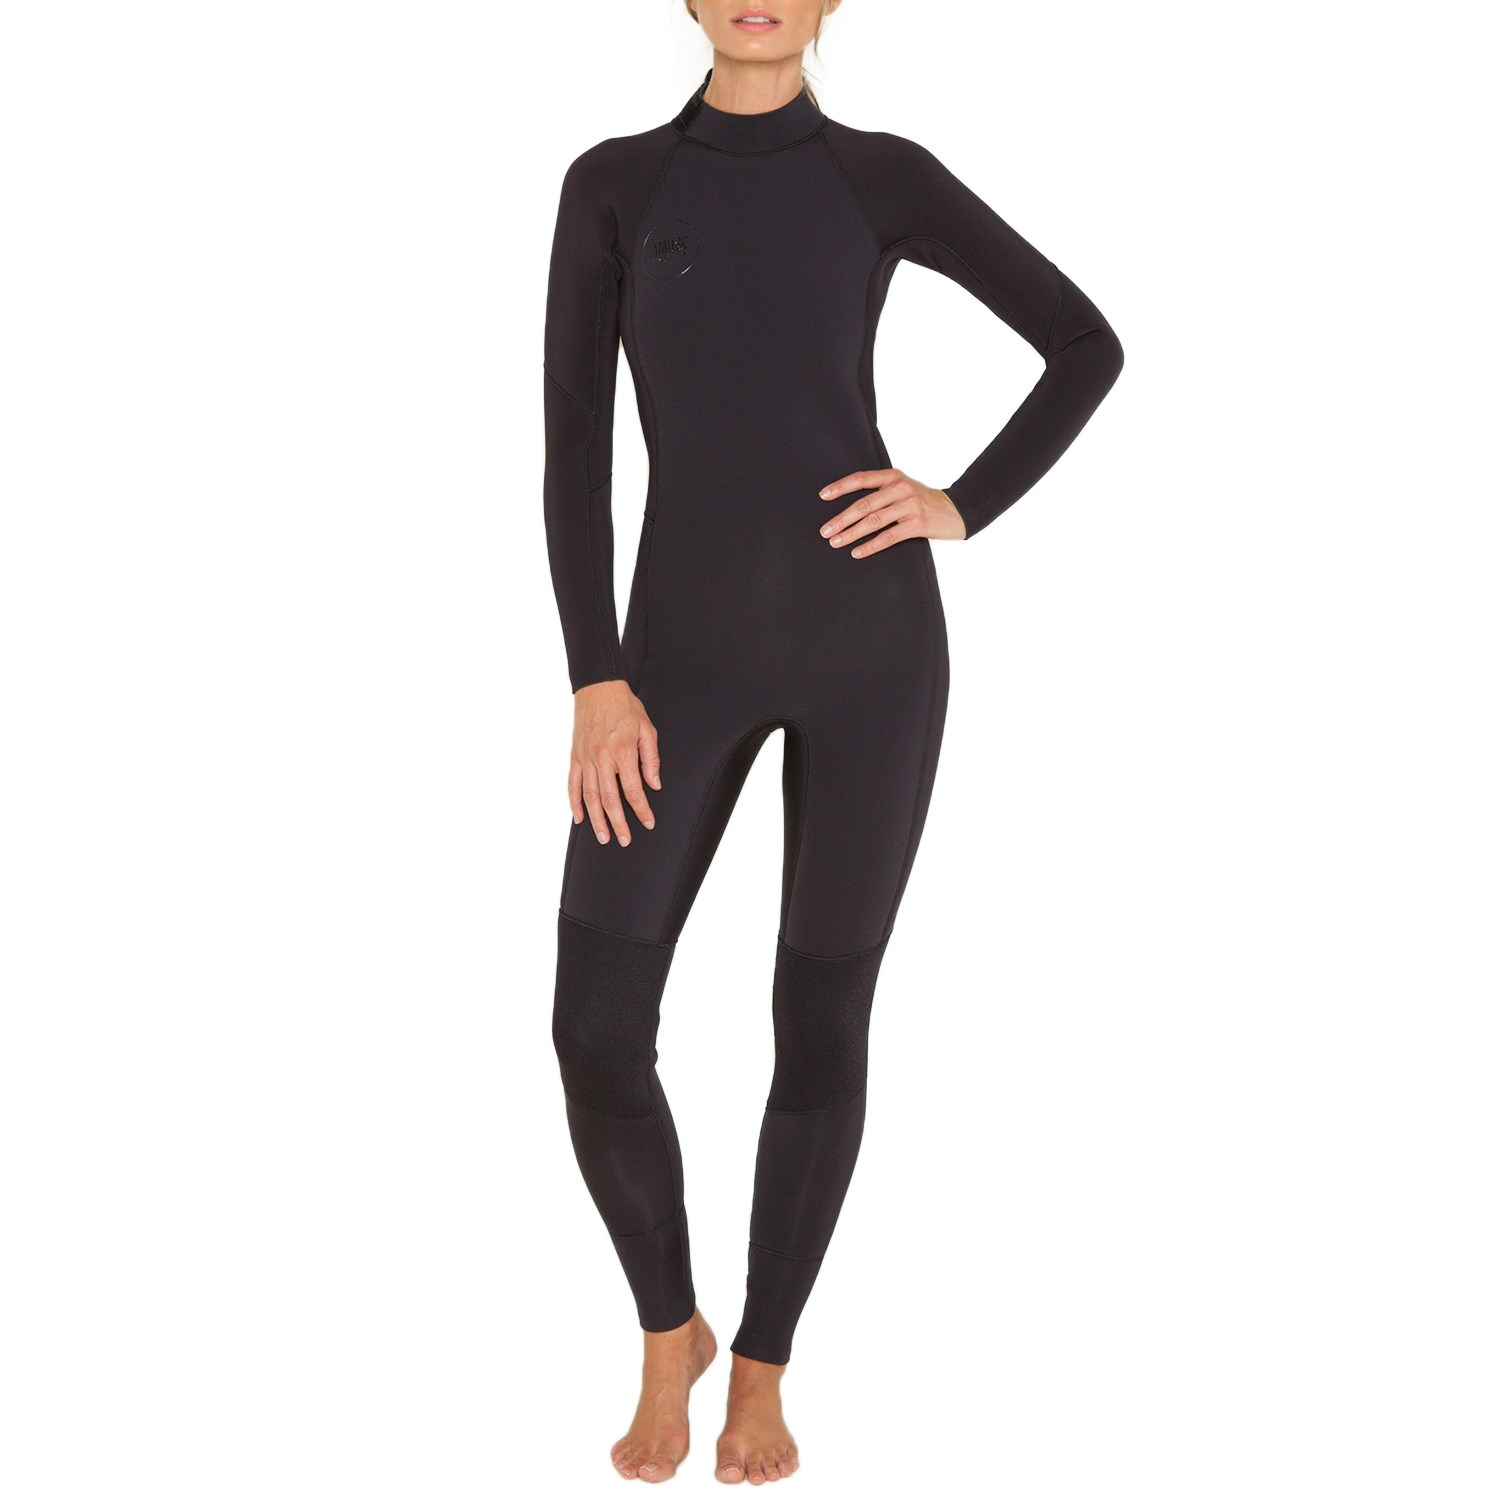 Amuse Society 3  2 Surf Series Wetsuit - Women s  219.95 Outlet   99.97 Sale 7fdda8190